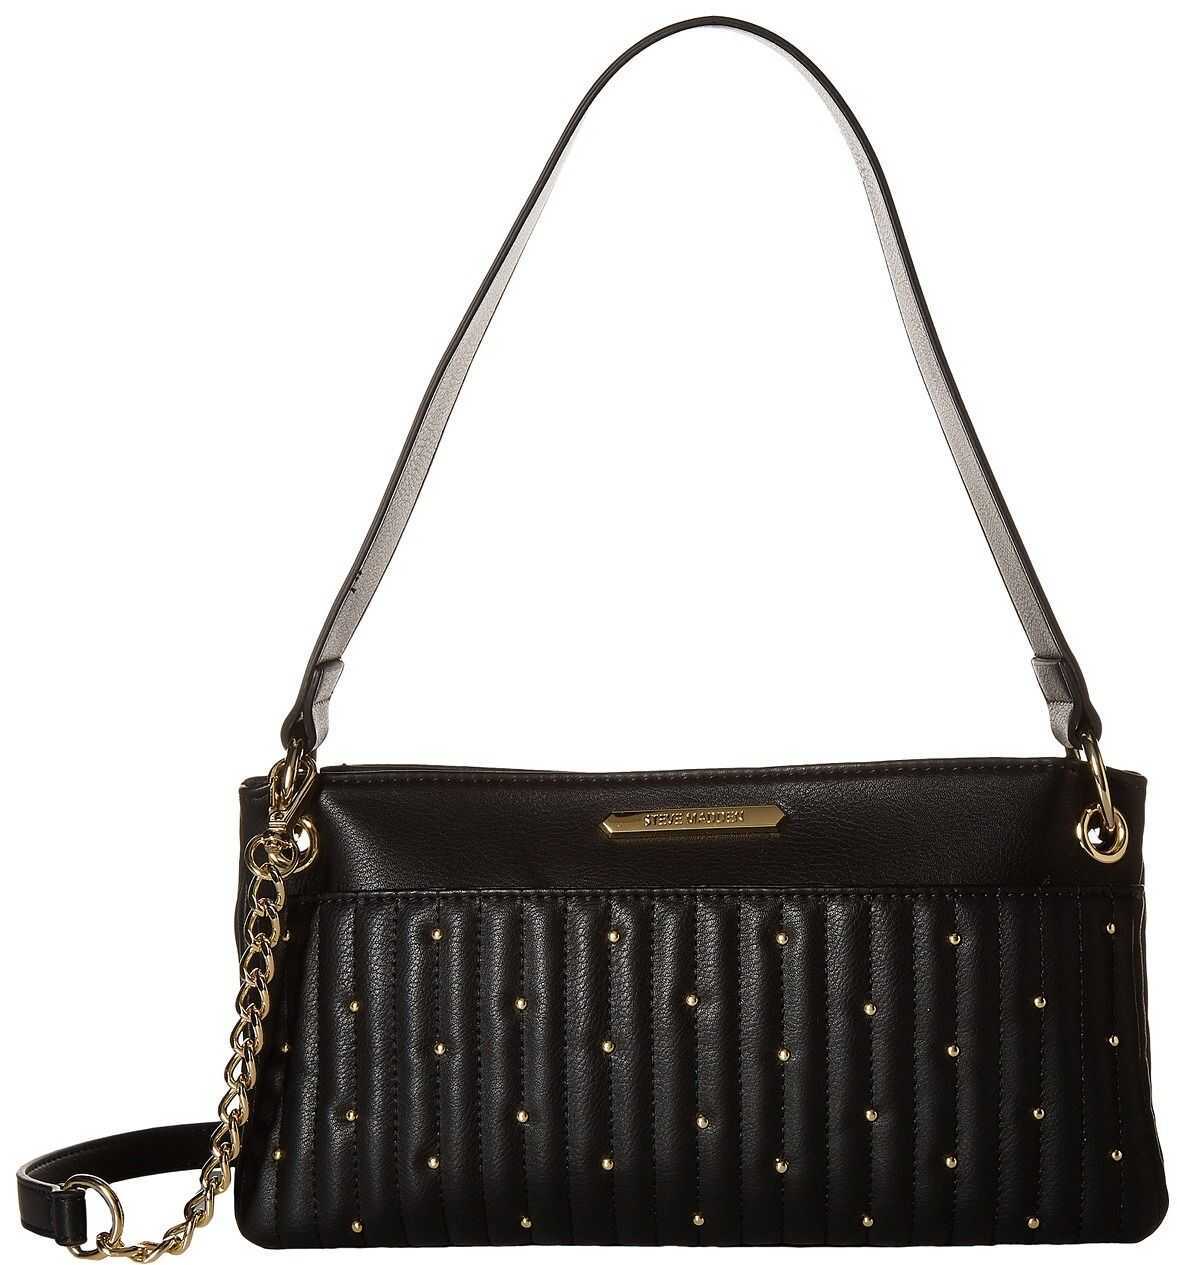 Steve Madden Bkimble Shoulder Bag Black